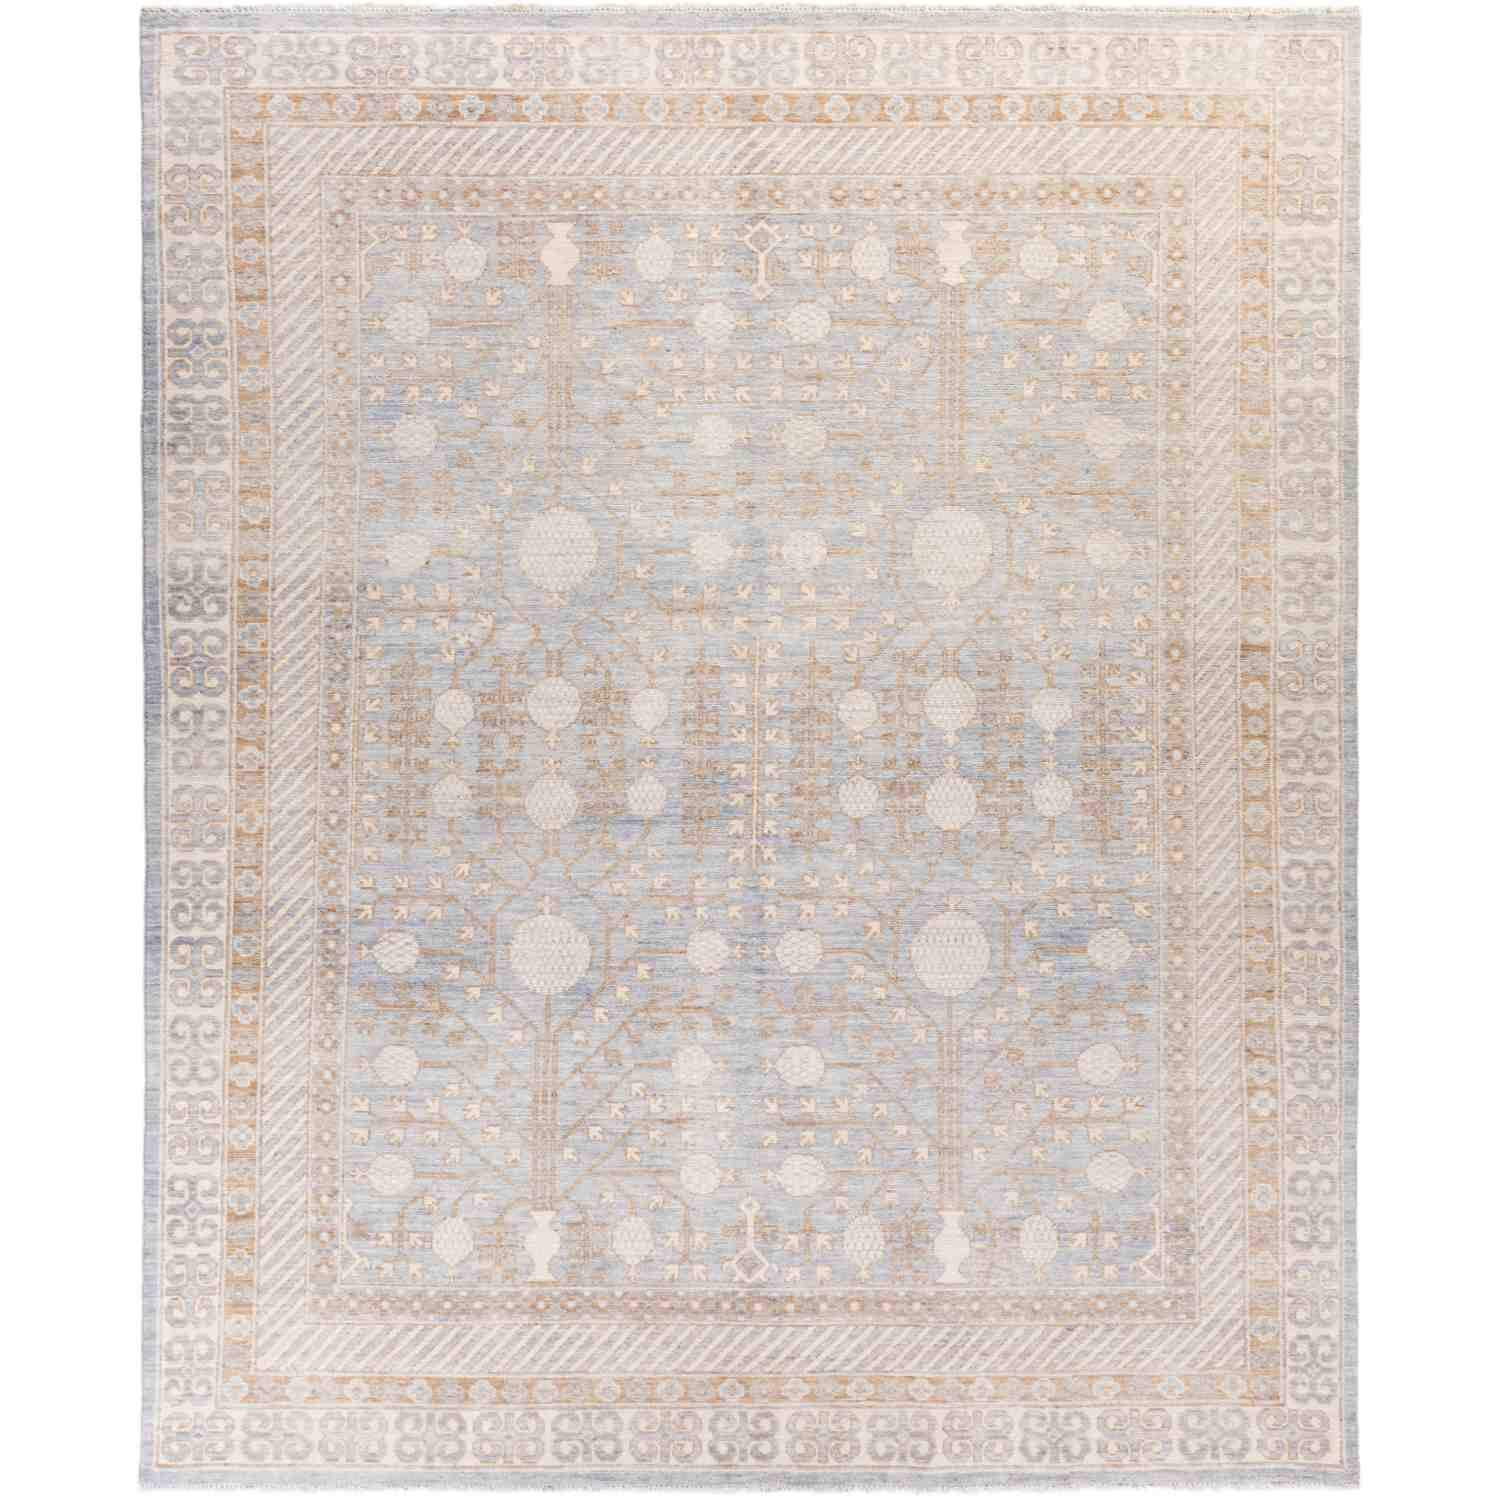 Solo Rugs Khotan Hand Knotted Area Rug 8 5 x 10 2 Denim